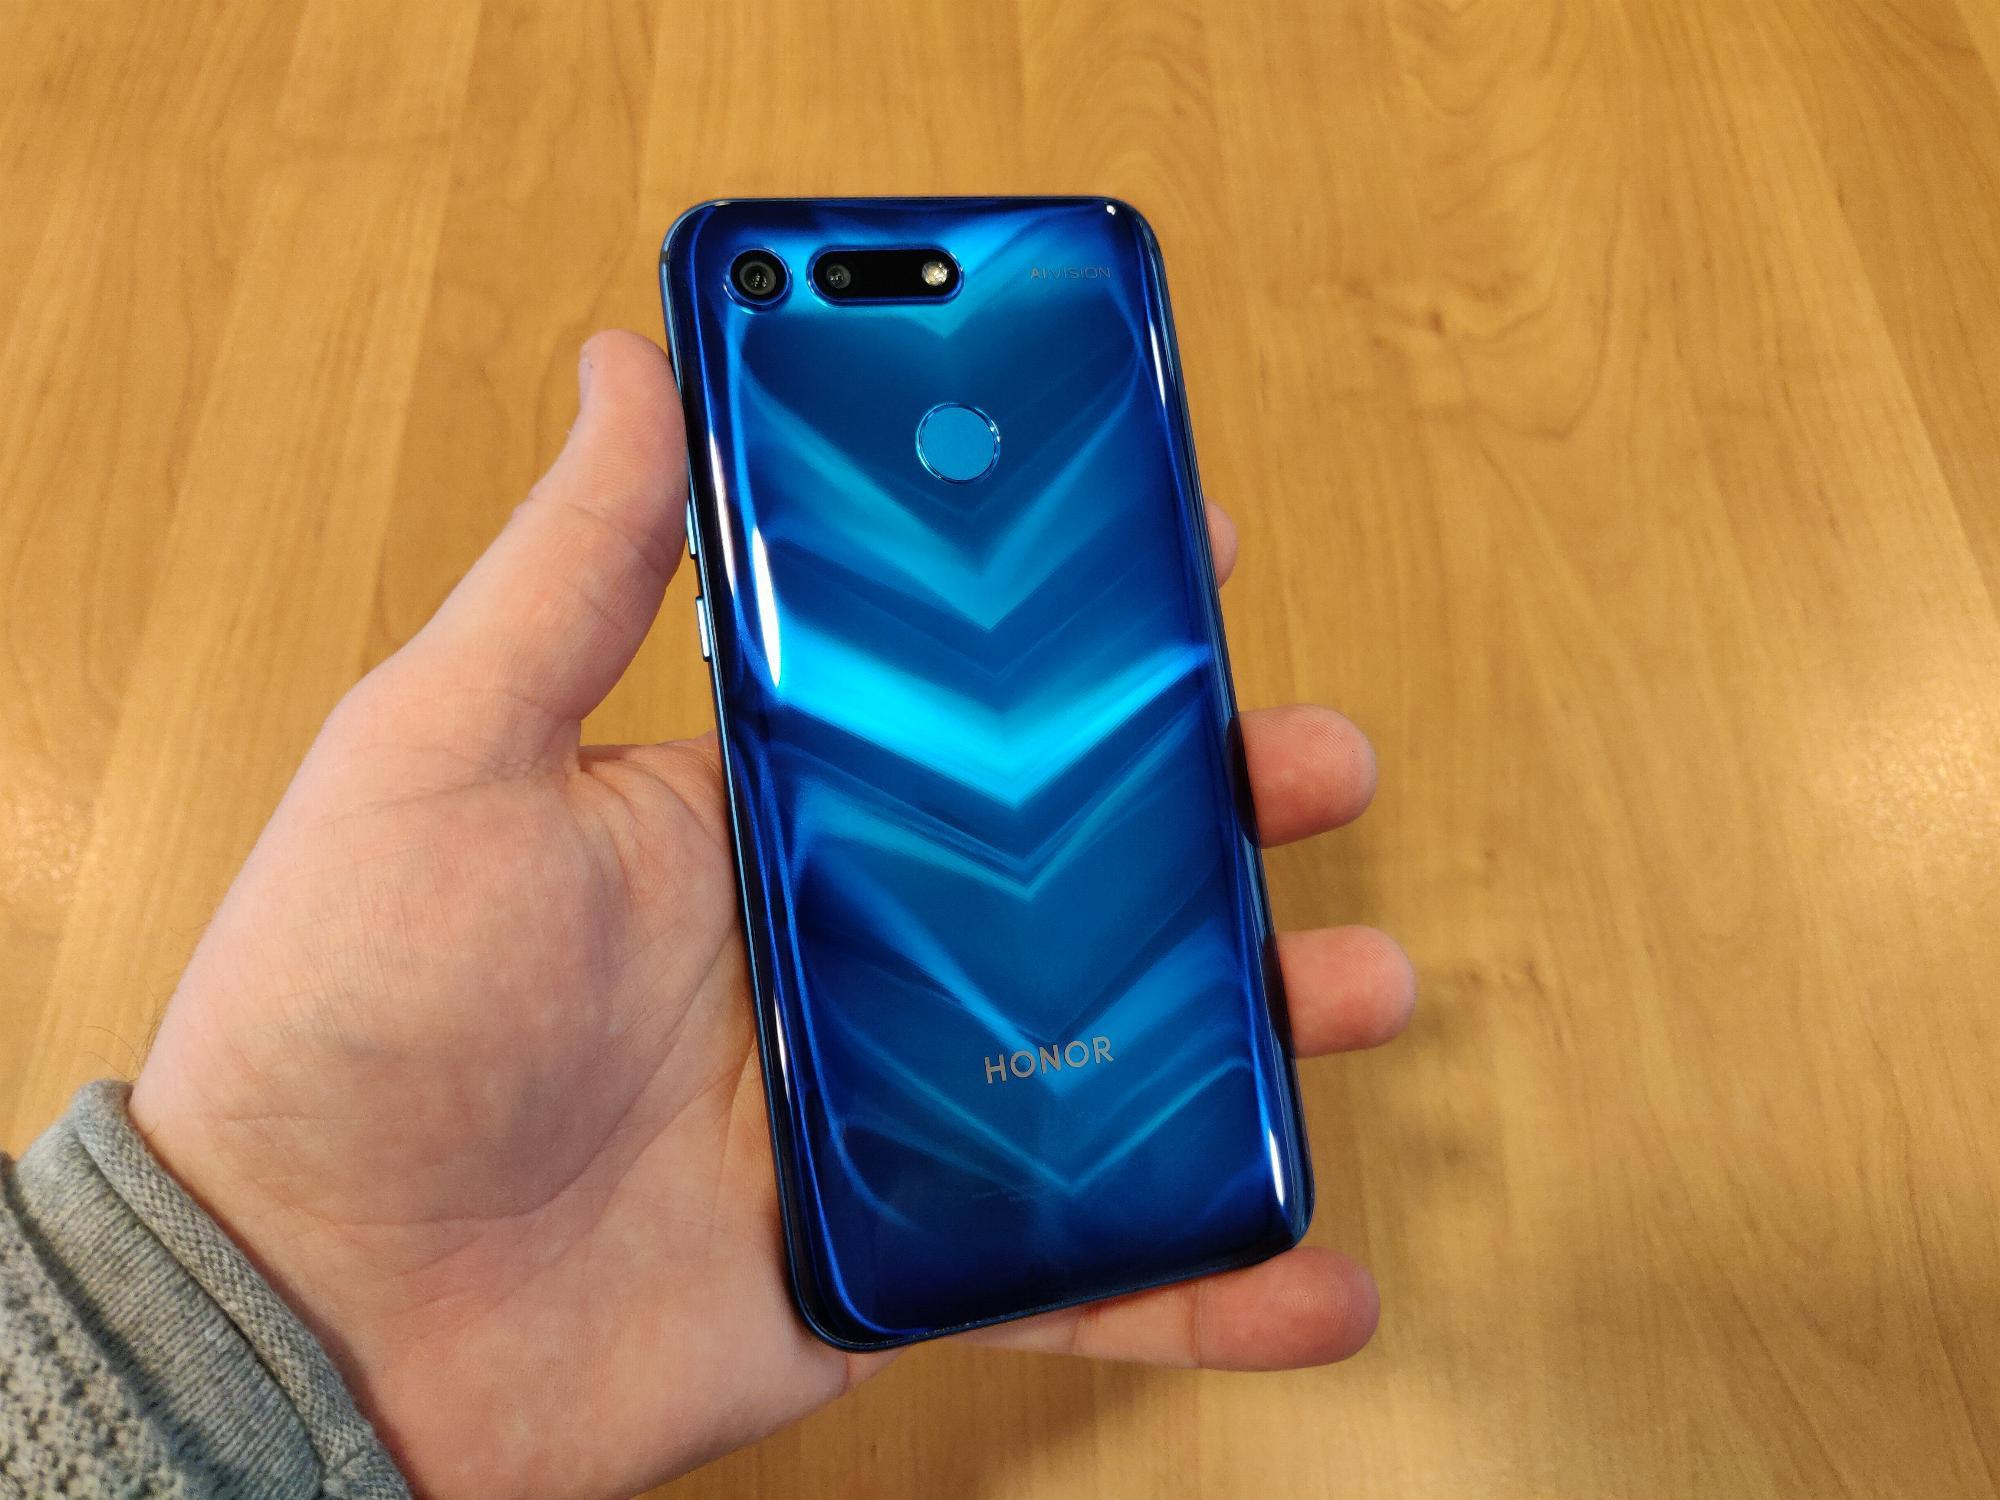 Honor View 20 Phantom Blue (Moschino Edition)